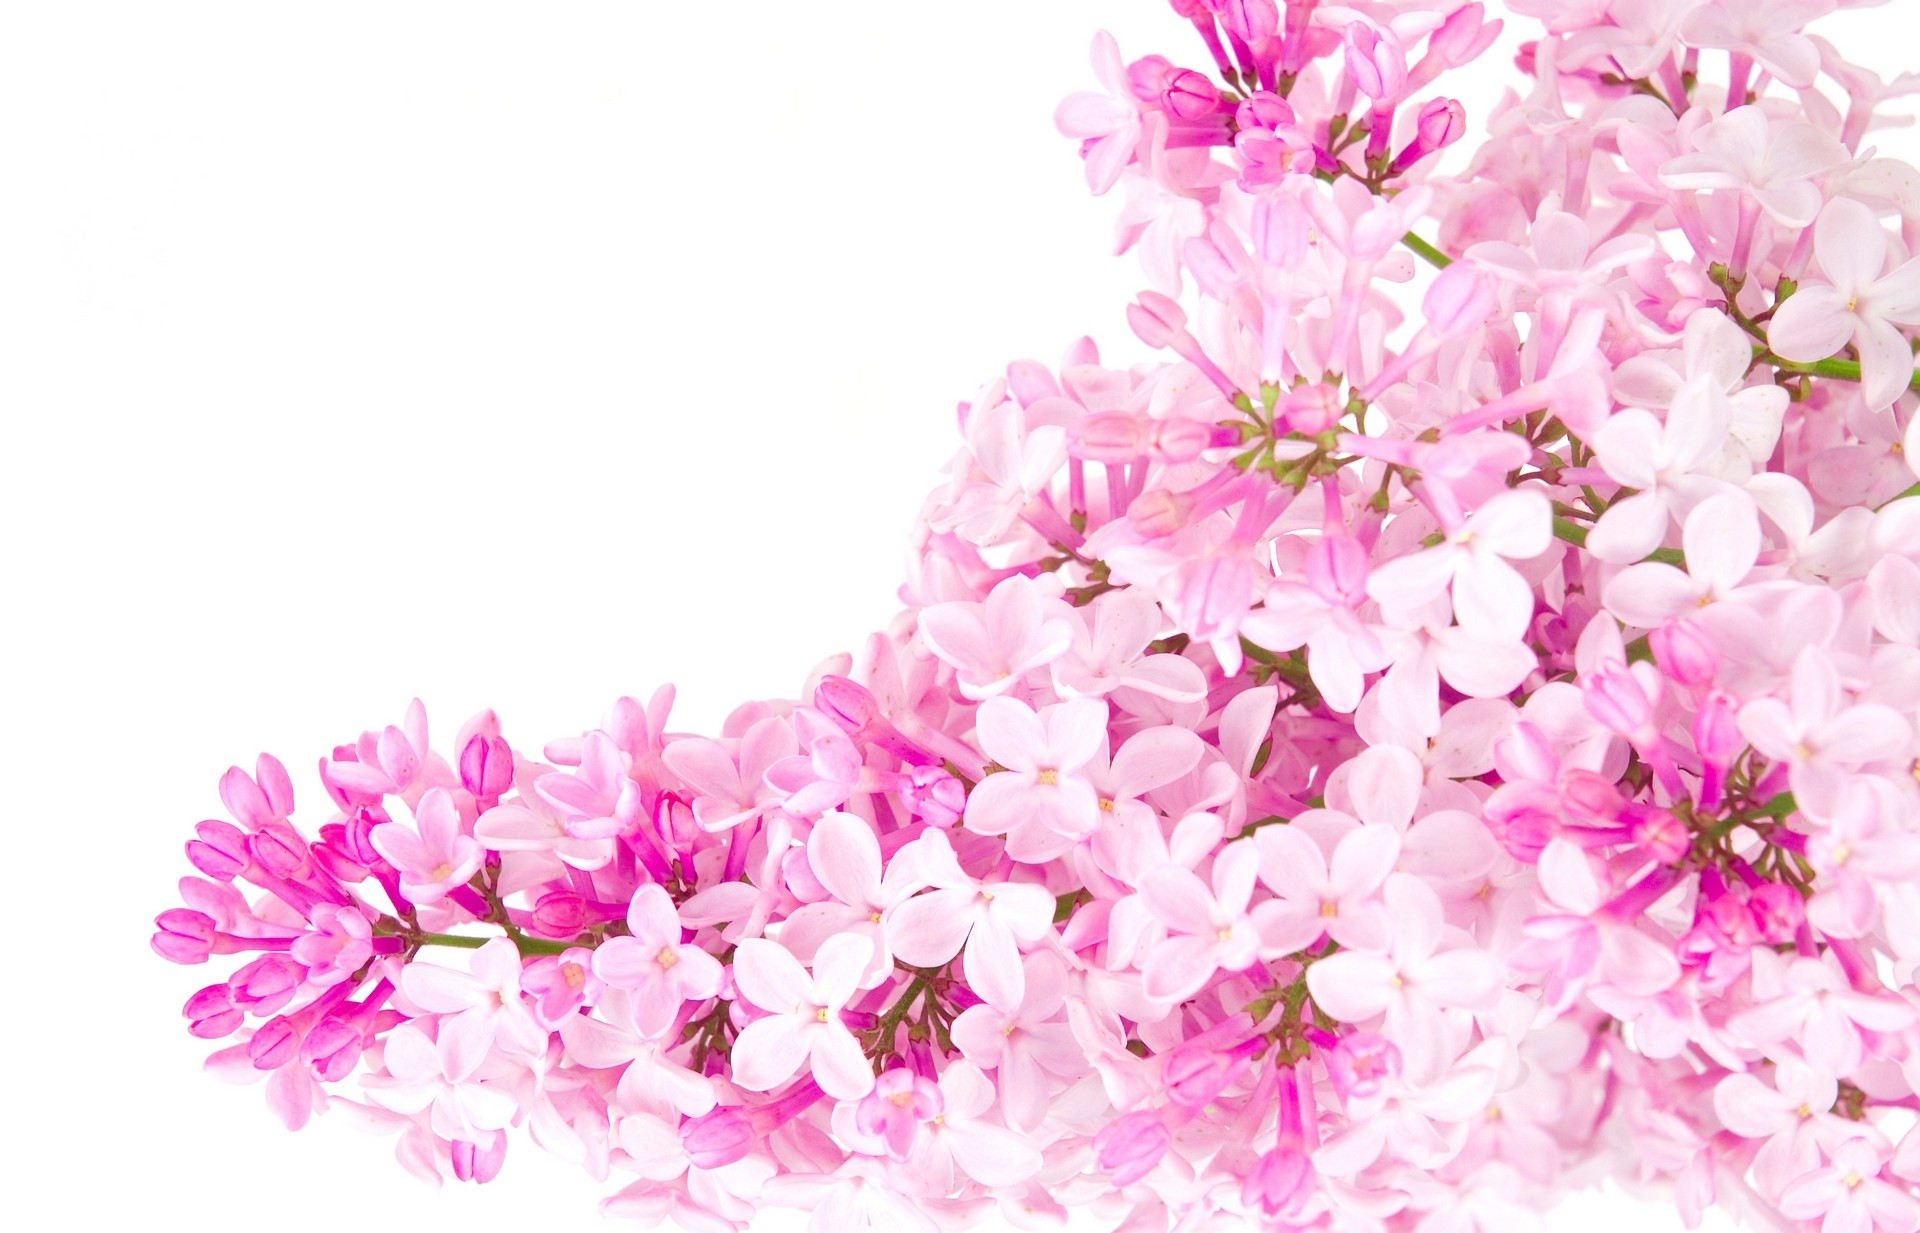 Flower backgrounds tumblr pixelstalk invitation pink flower wallpaper tumblr flower name pinky mightylinksfo